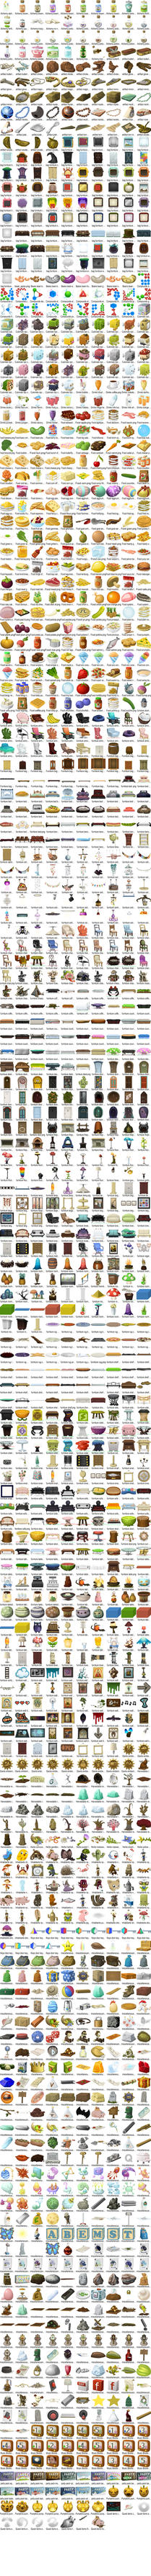 Glitch Items Contact Sheet by wetdryvac